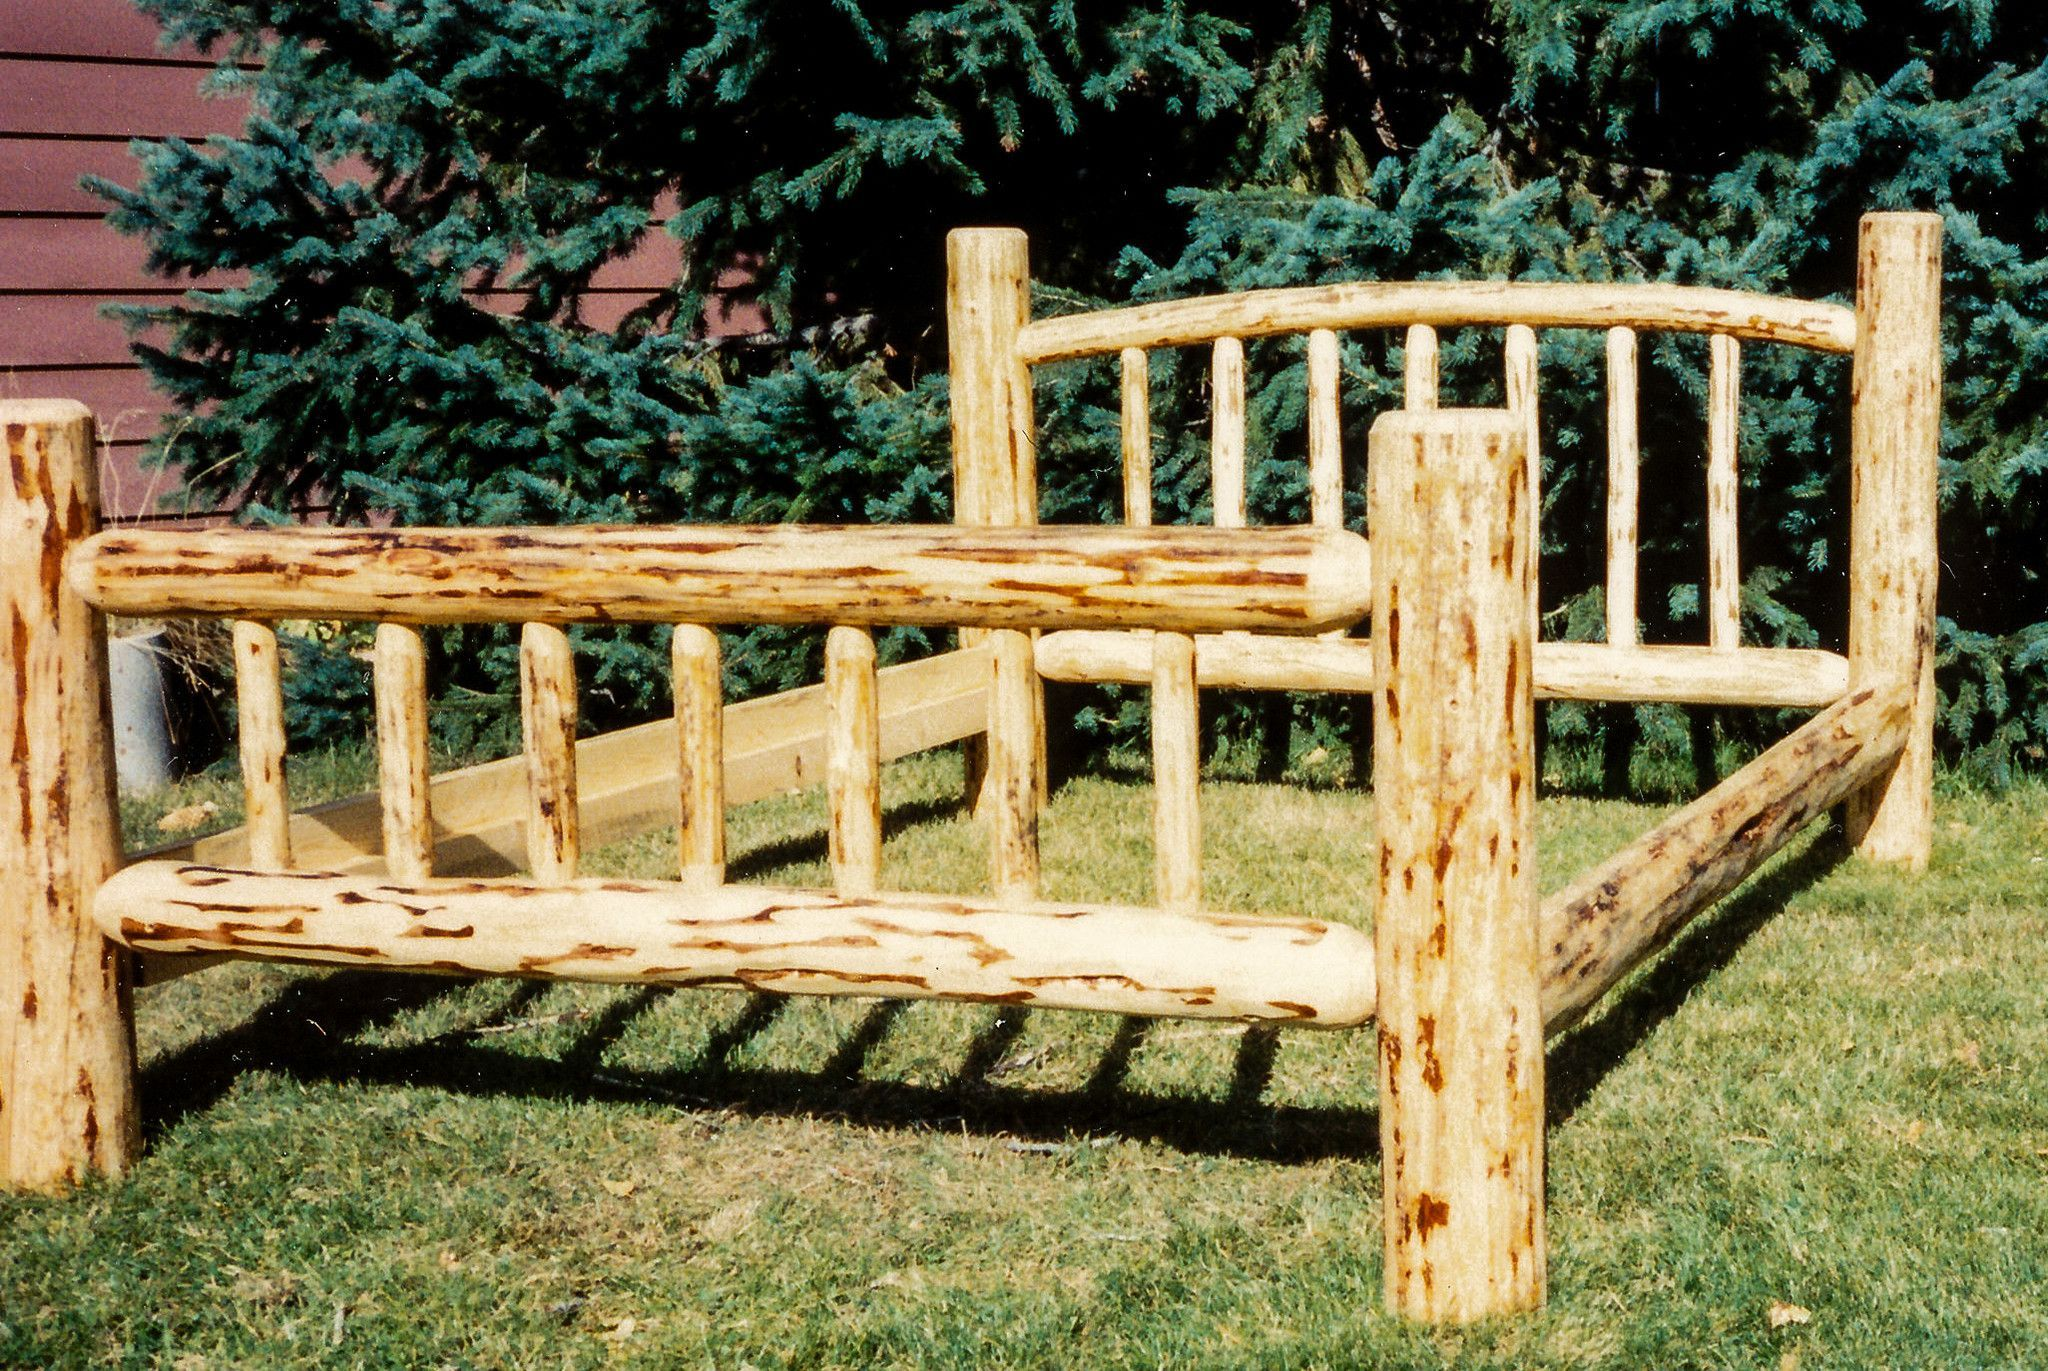 Handmade Lodgepole Pine Log Bed With Curved Headboard